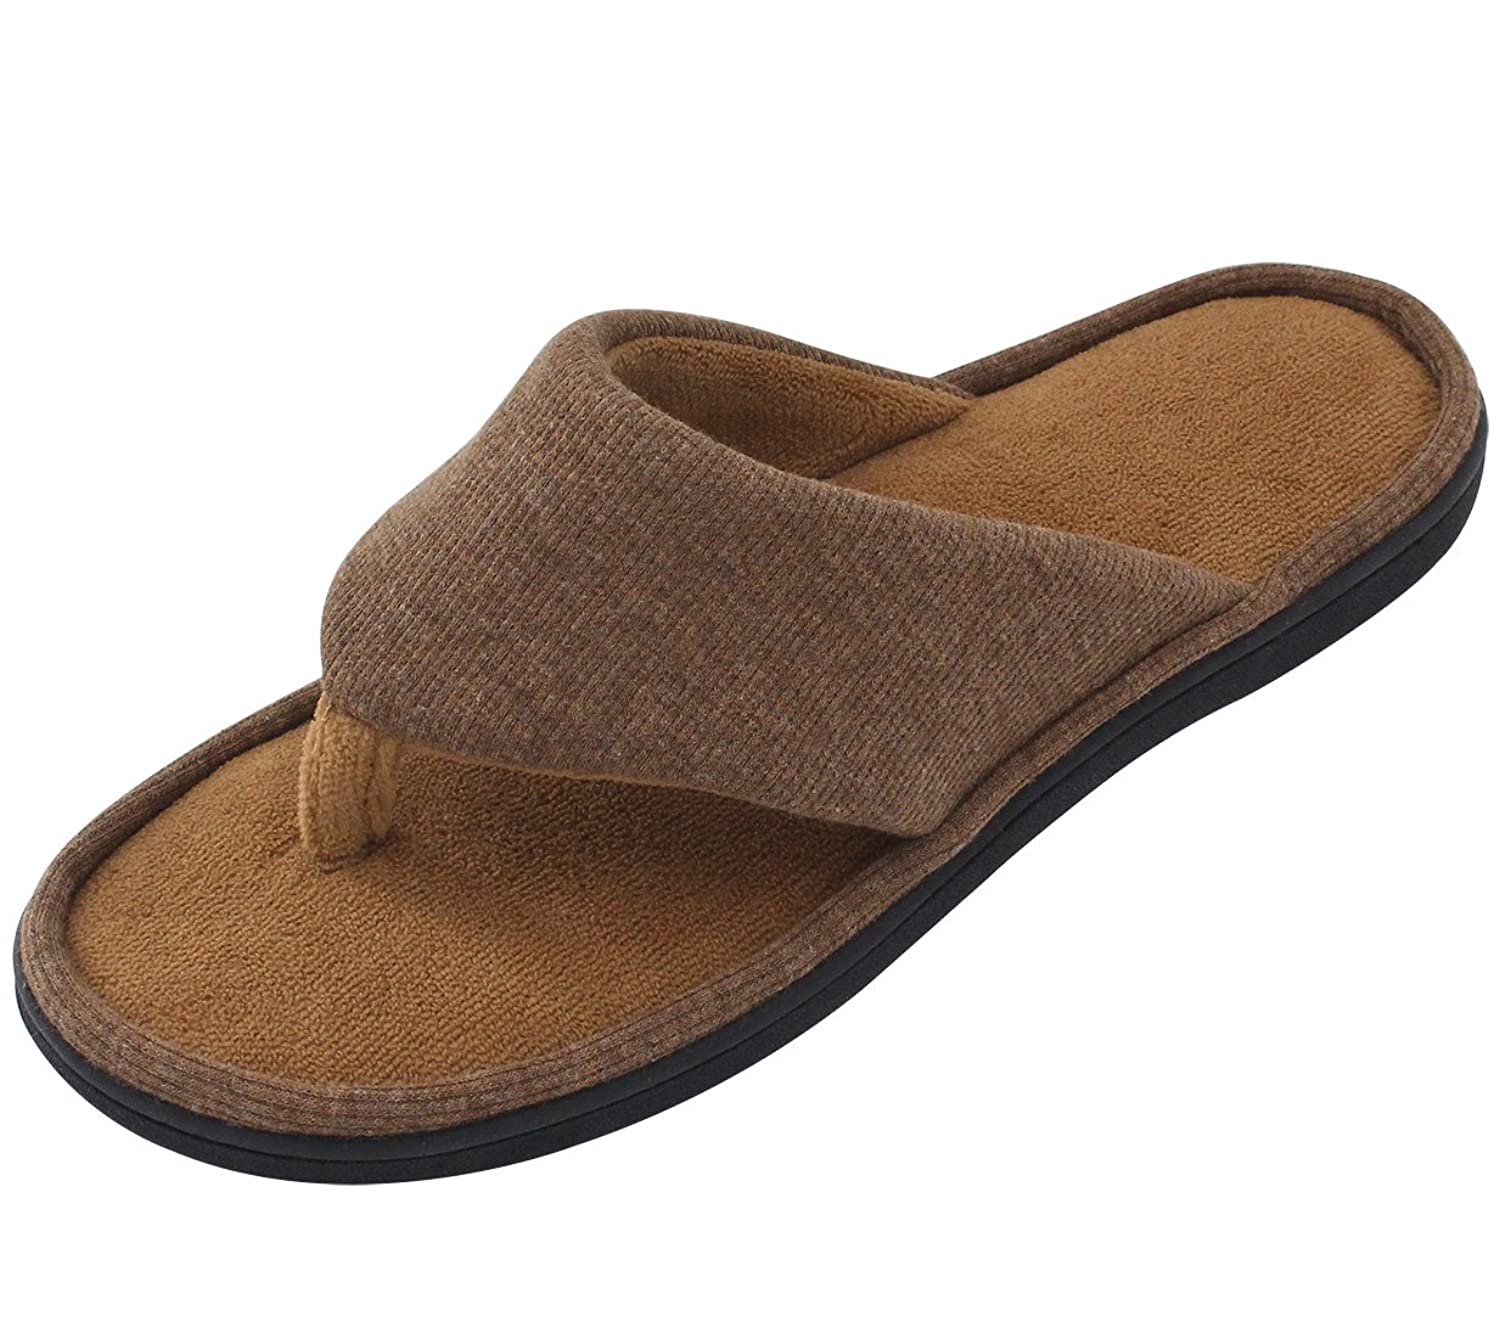 buy cheap big discount sale online cheap Hve Beige Slippers real sale the cheapest shopping online ApqSLK3BU